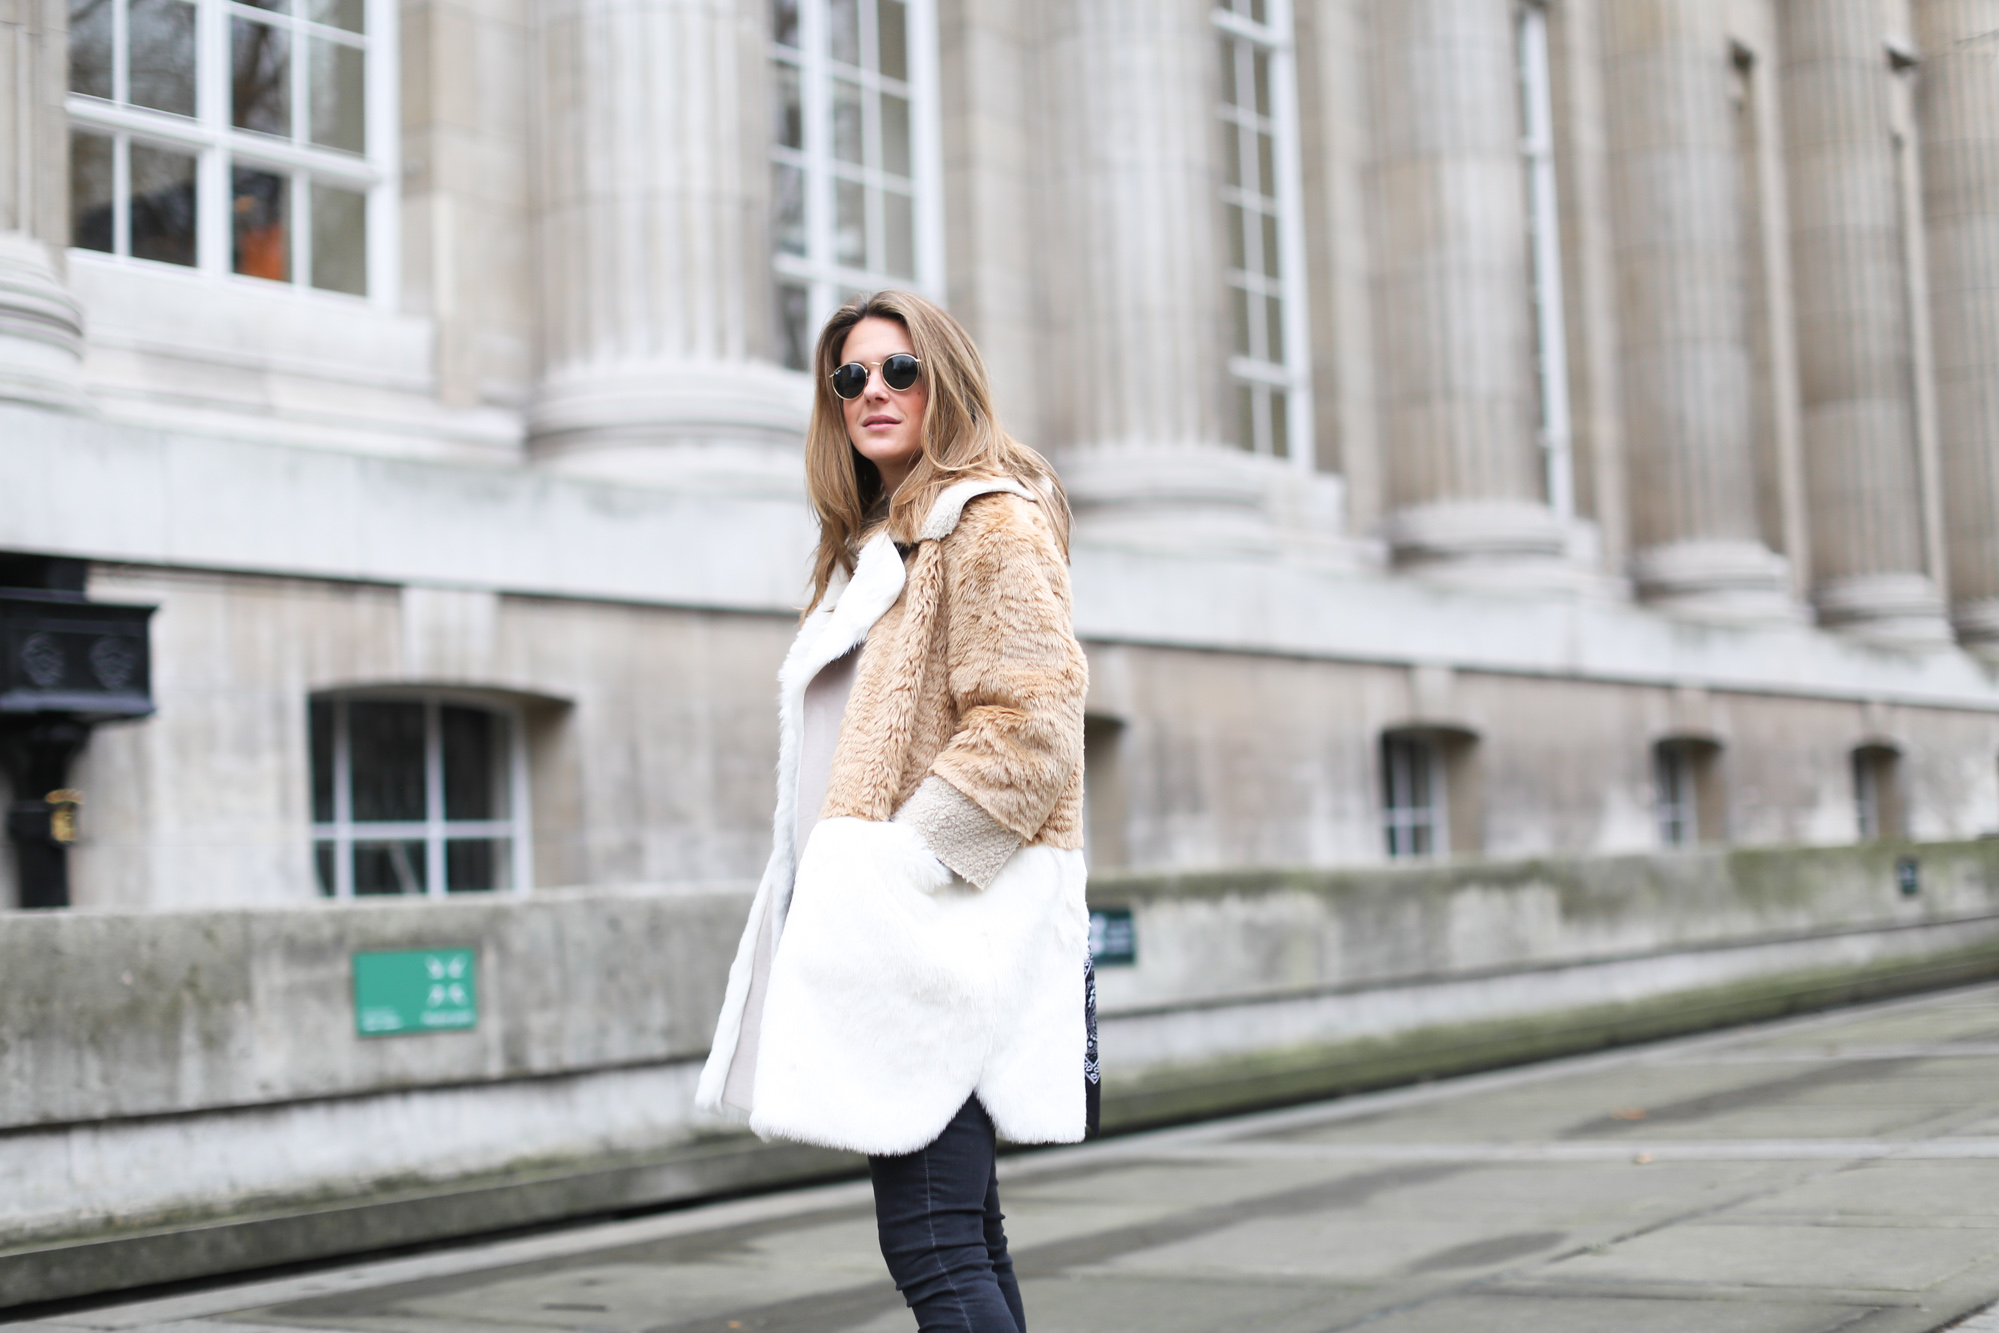 clochet_streestyle_london_asos_faux_fur_patchowork_coat_topshop_jamie_jeans-7